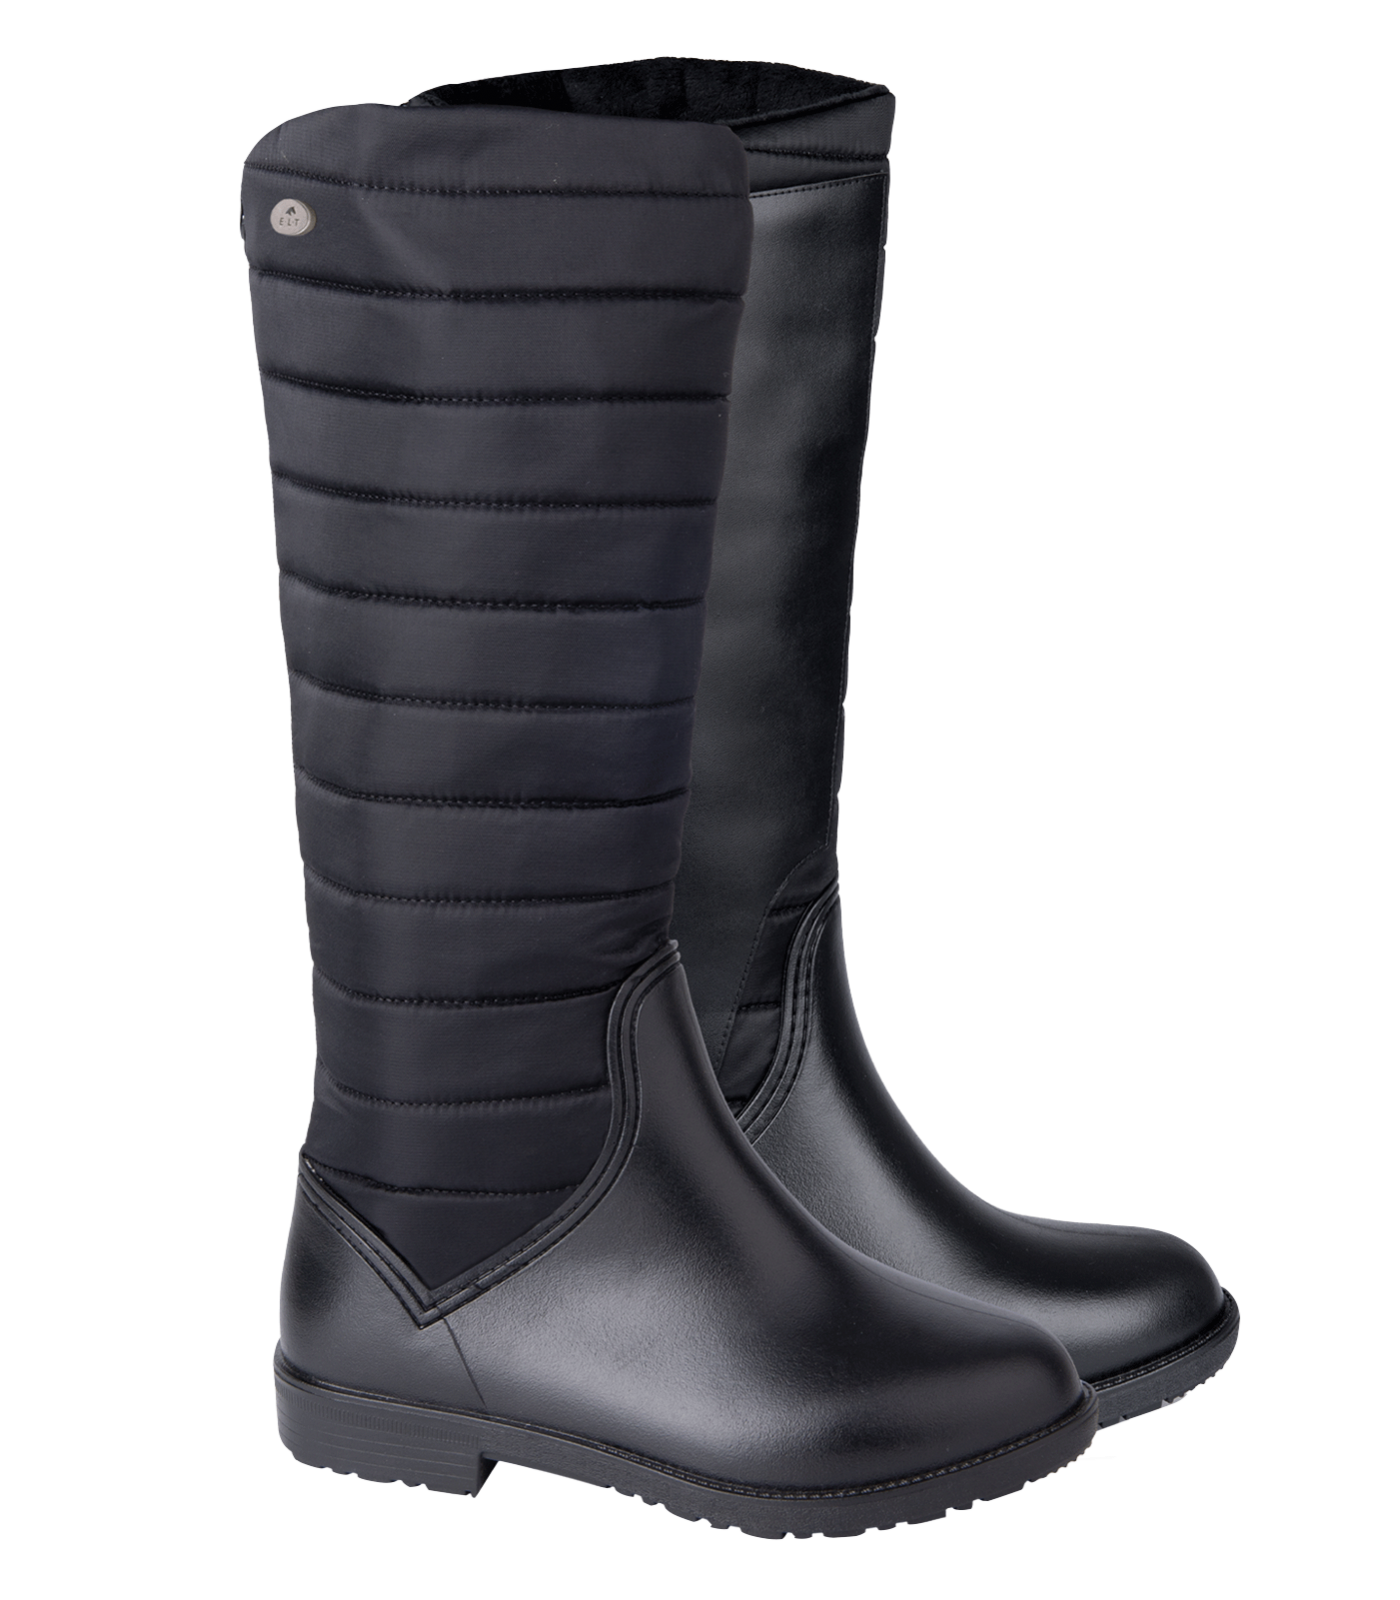 Thermo Bottes Thermo Thermo Alesund Thermo Bottes Bottes Alesund Alesund Alesund Bottes WHIe2ED9Y